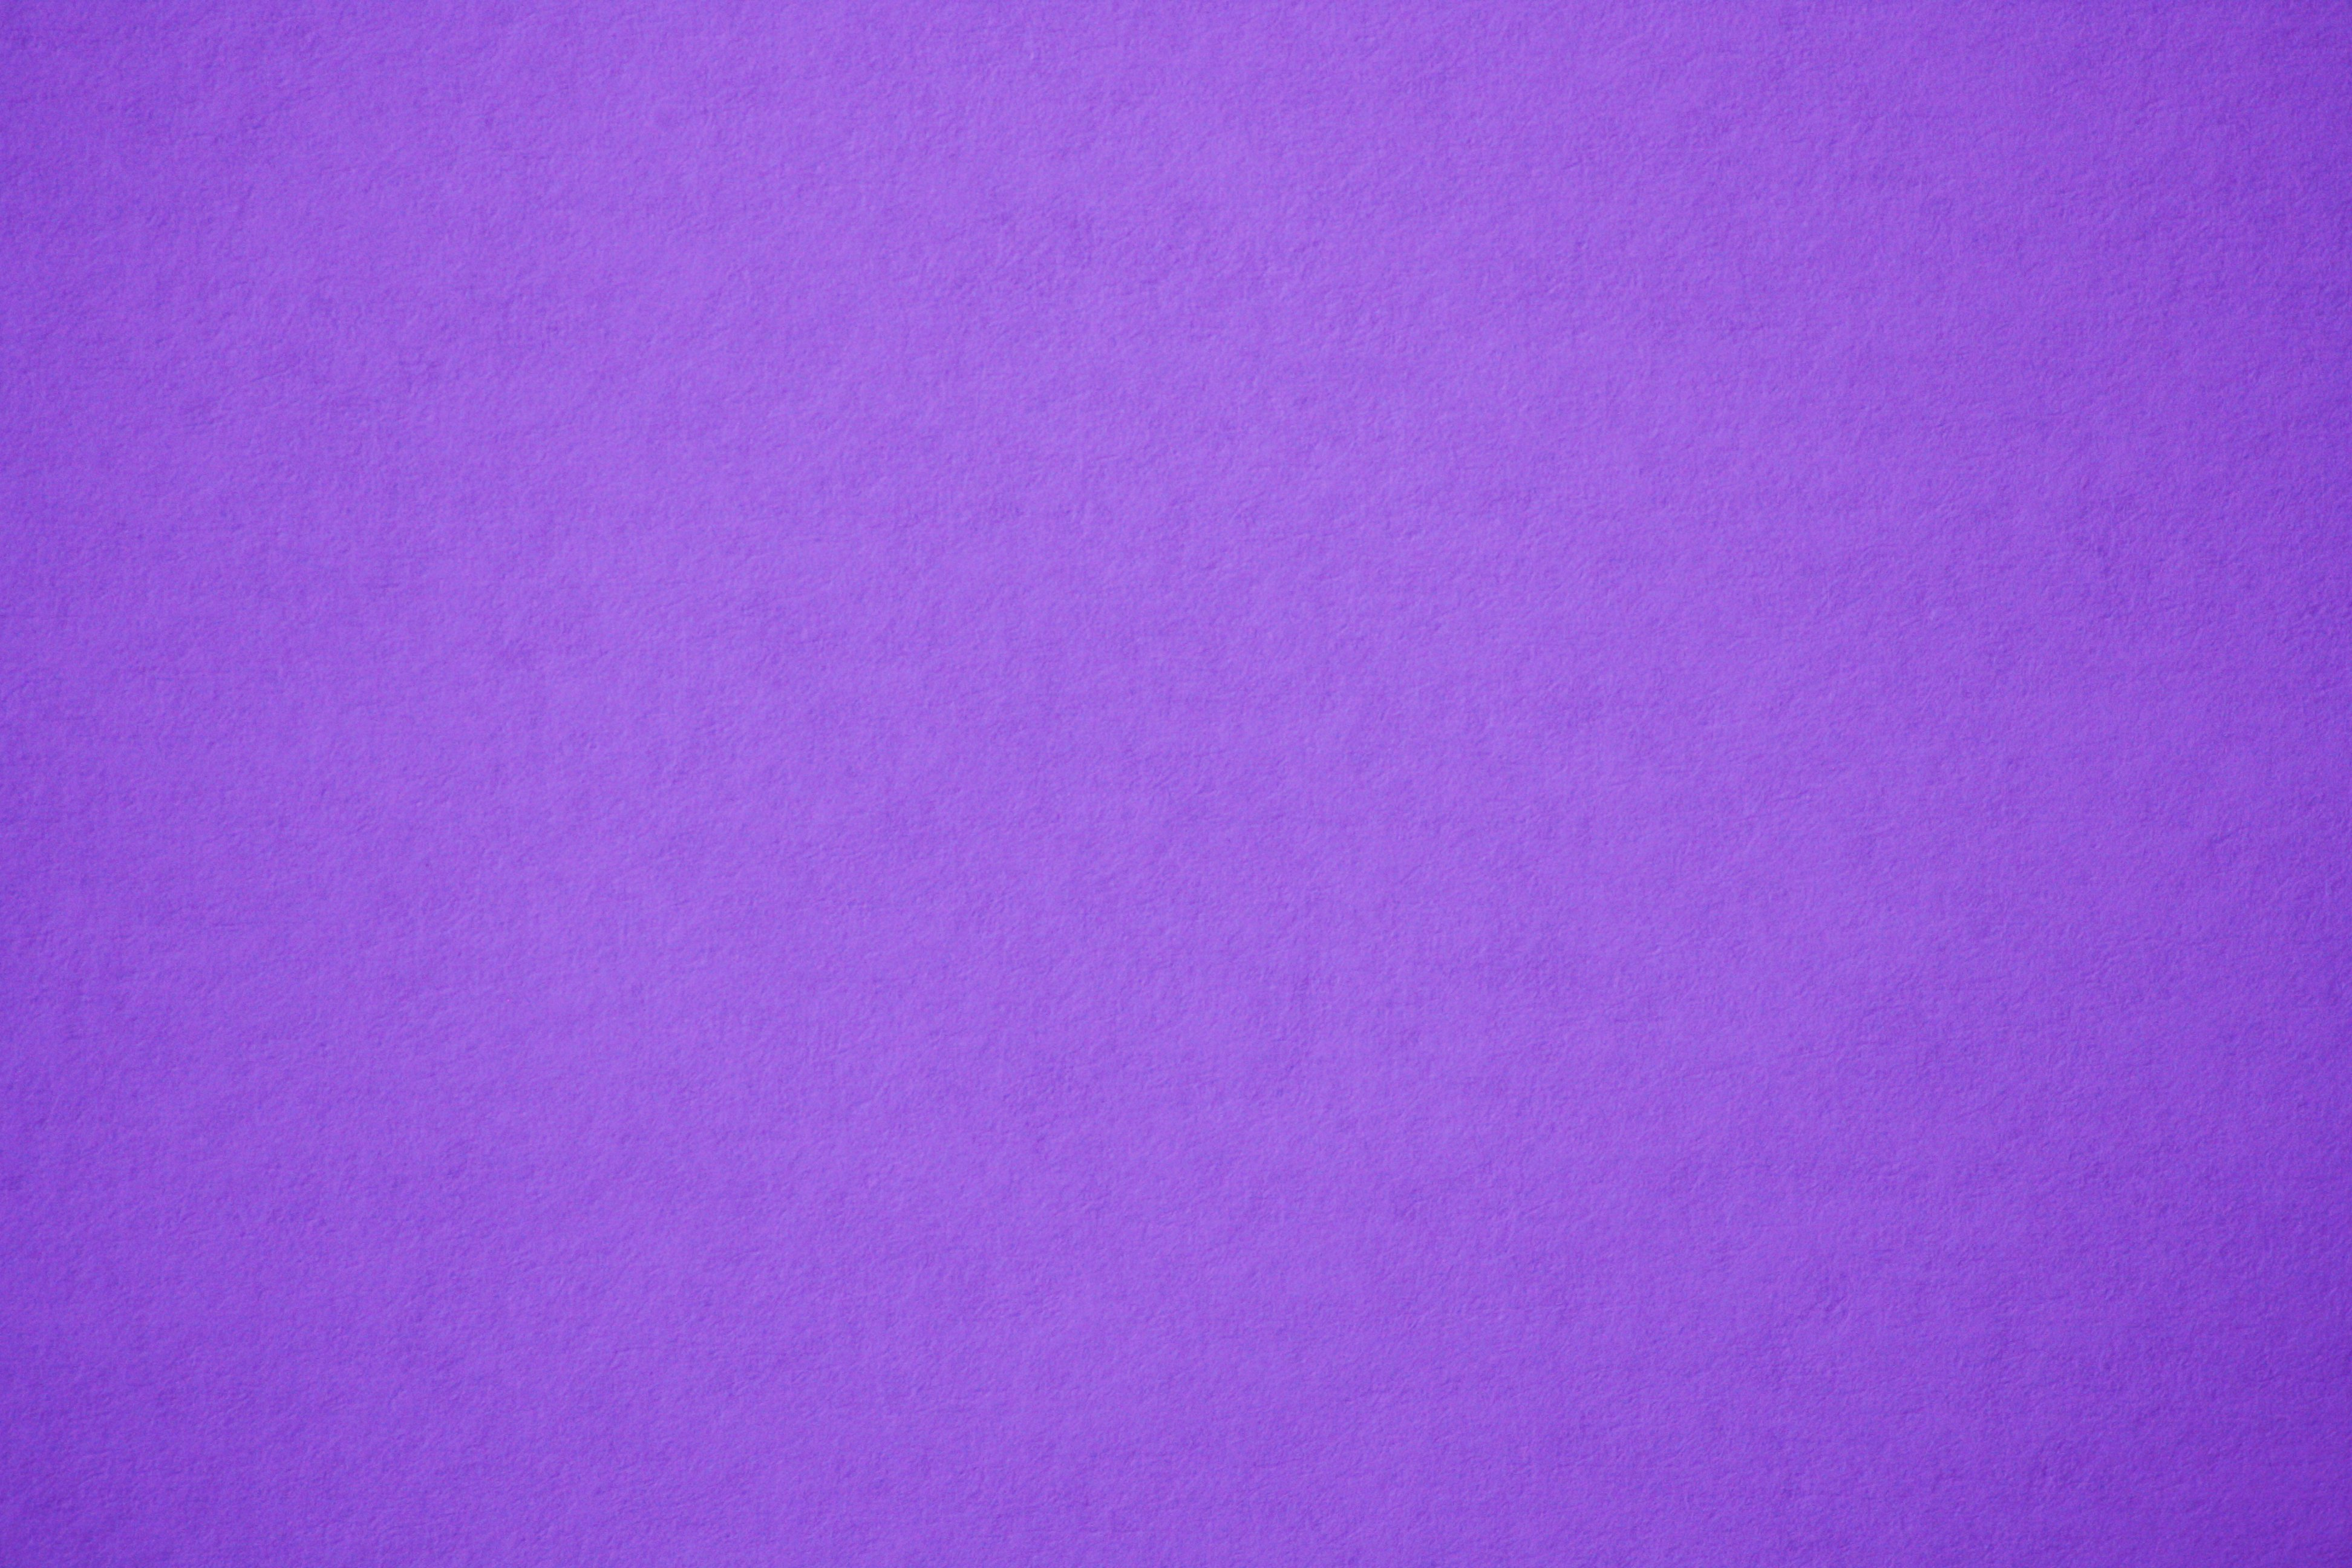 purple paper texture photos public domain. Black Bedroom Furniture Sets. Home Design Ideas